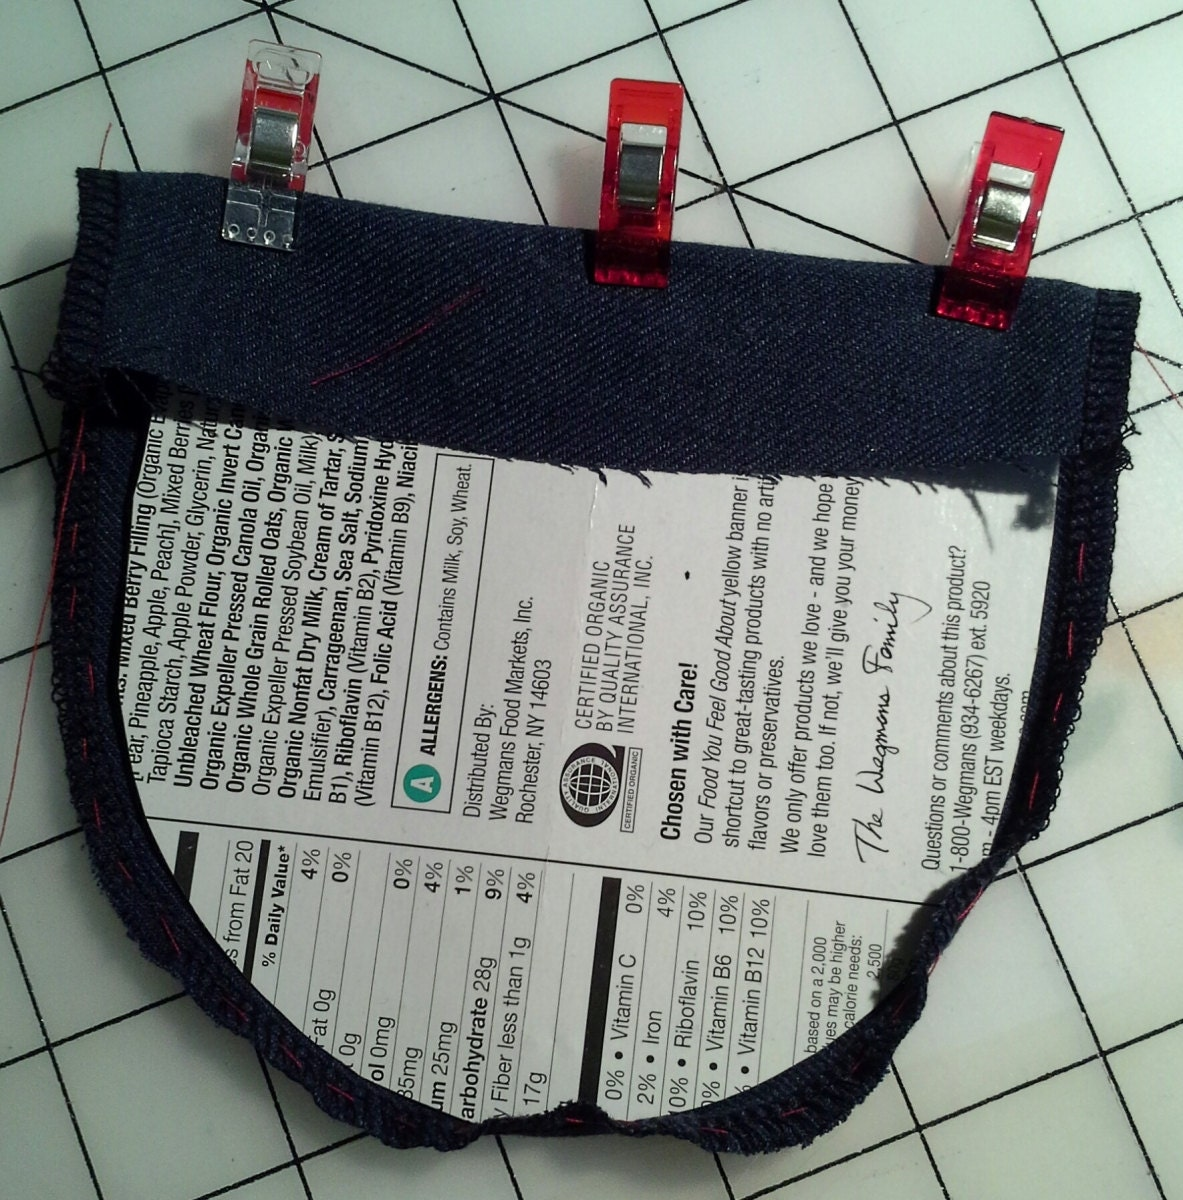 place the cardboard pattern in the center of the pocket fabric